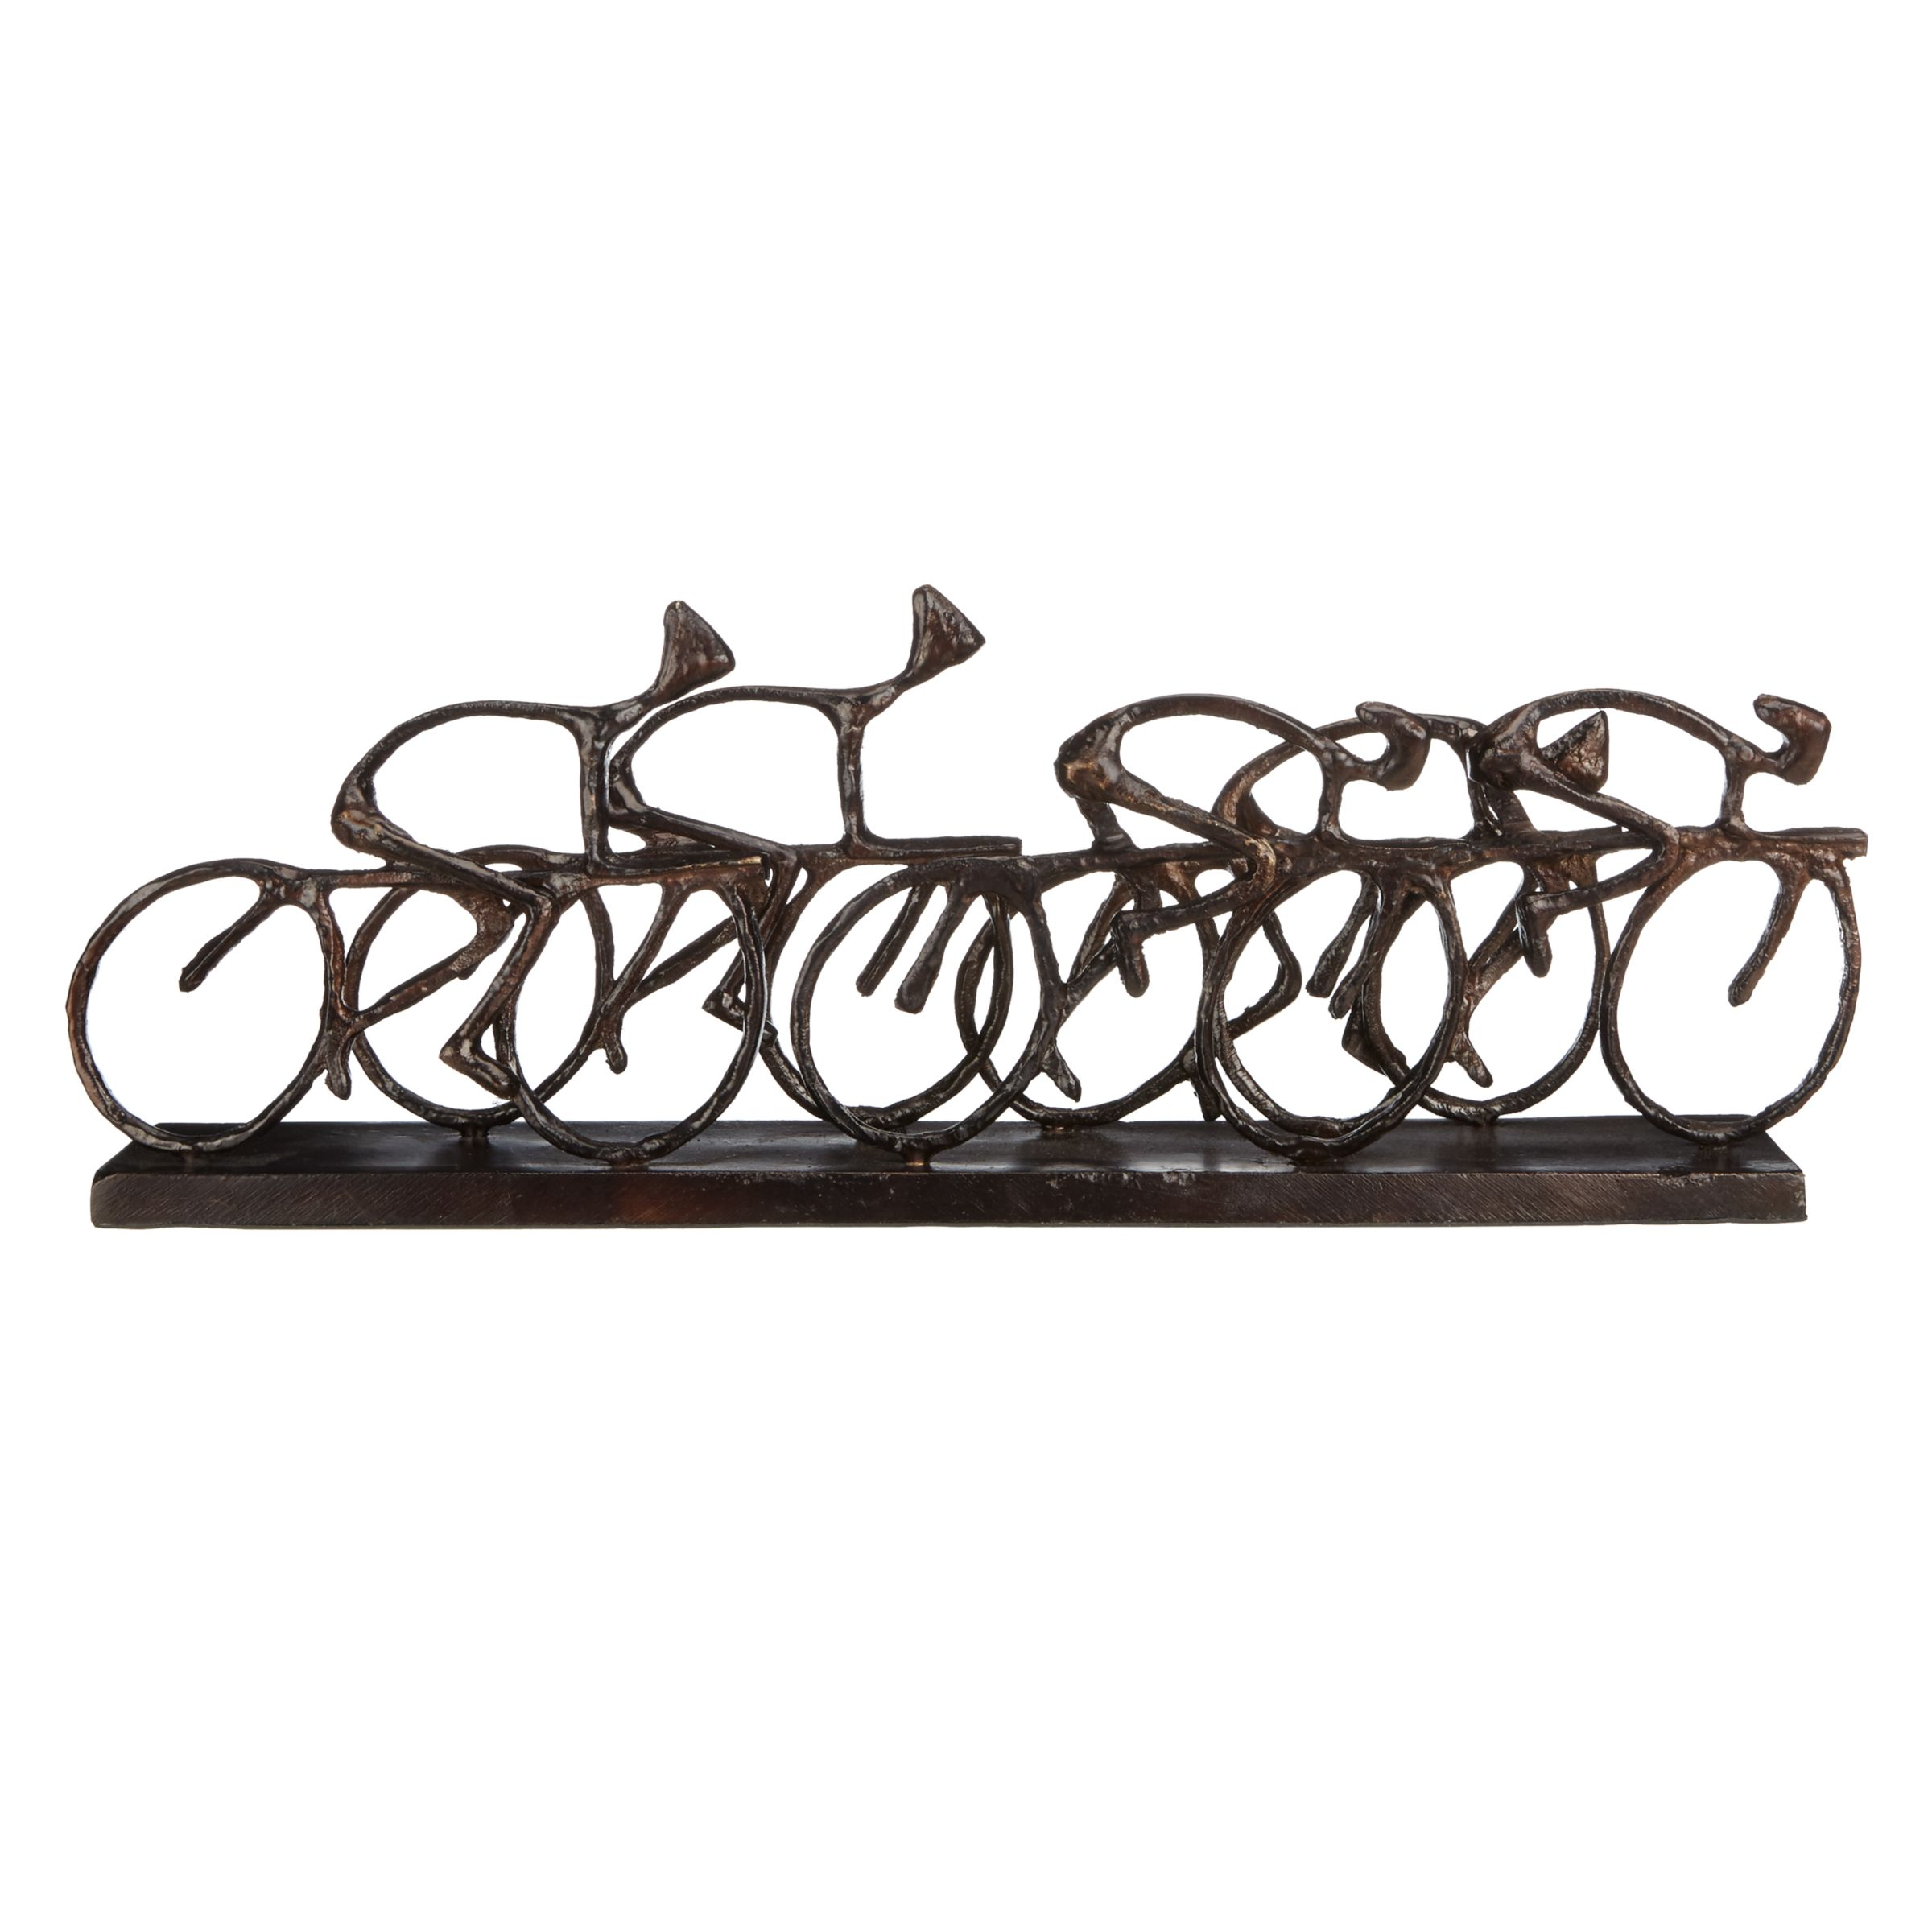 Libra Libra Antique Bronze Cyclists Sculpture